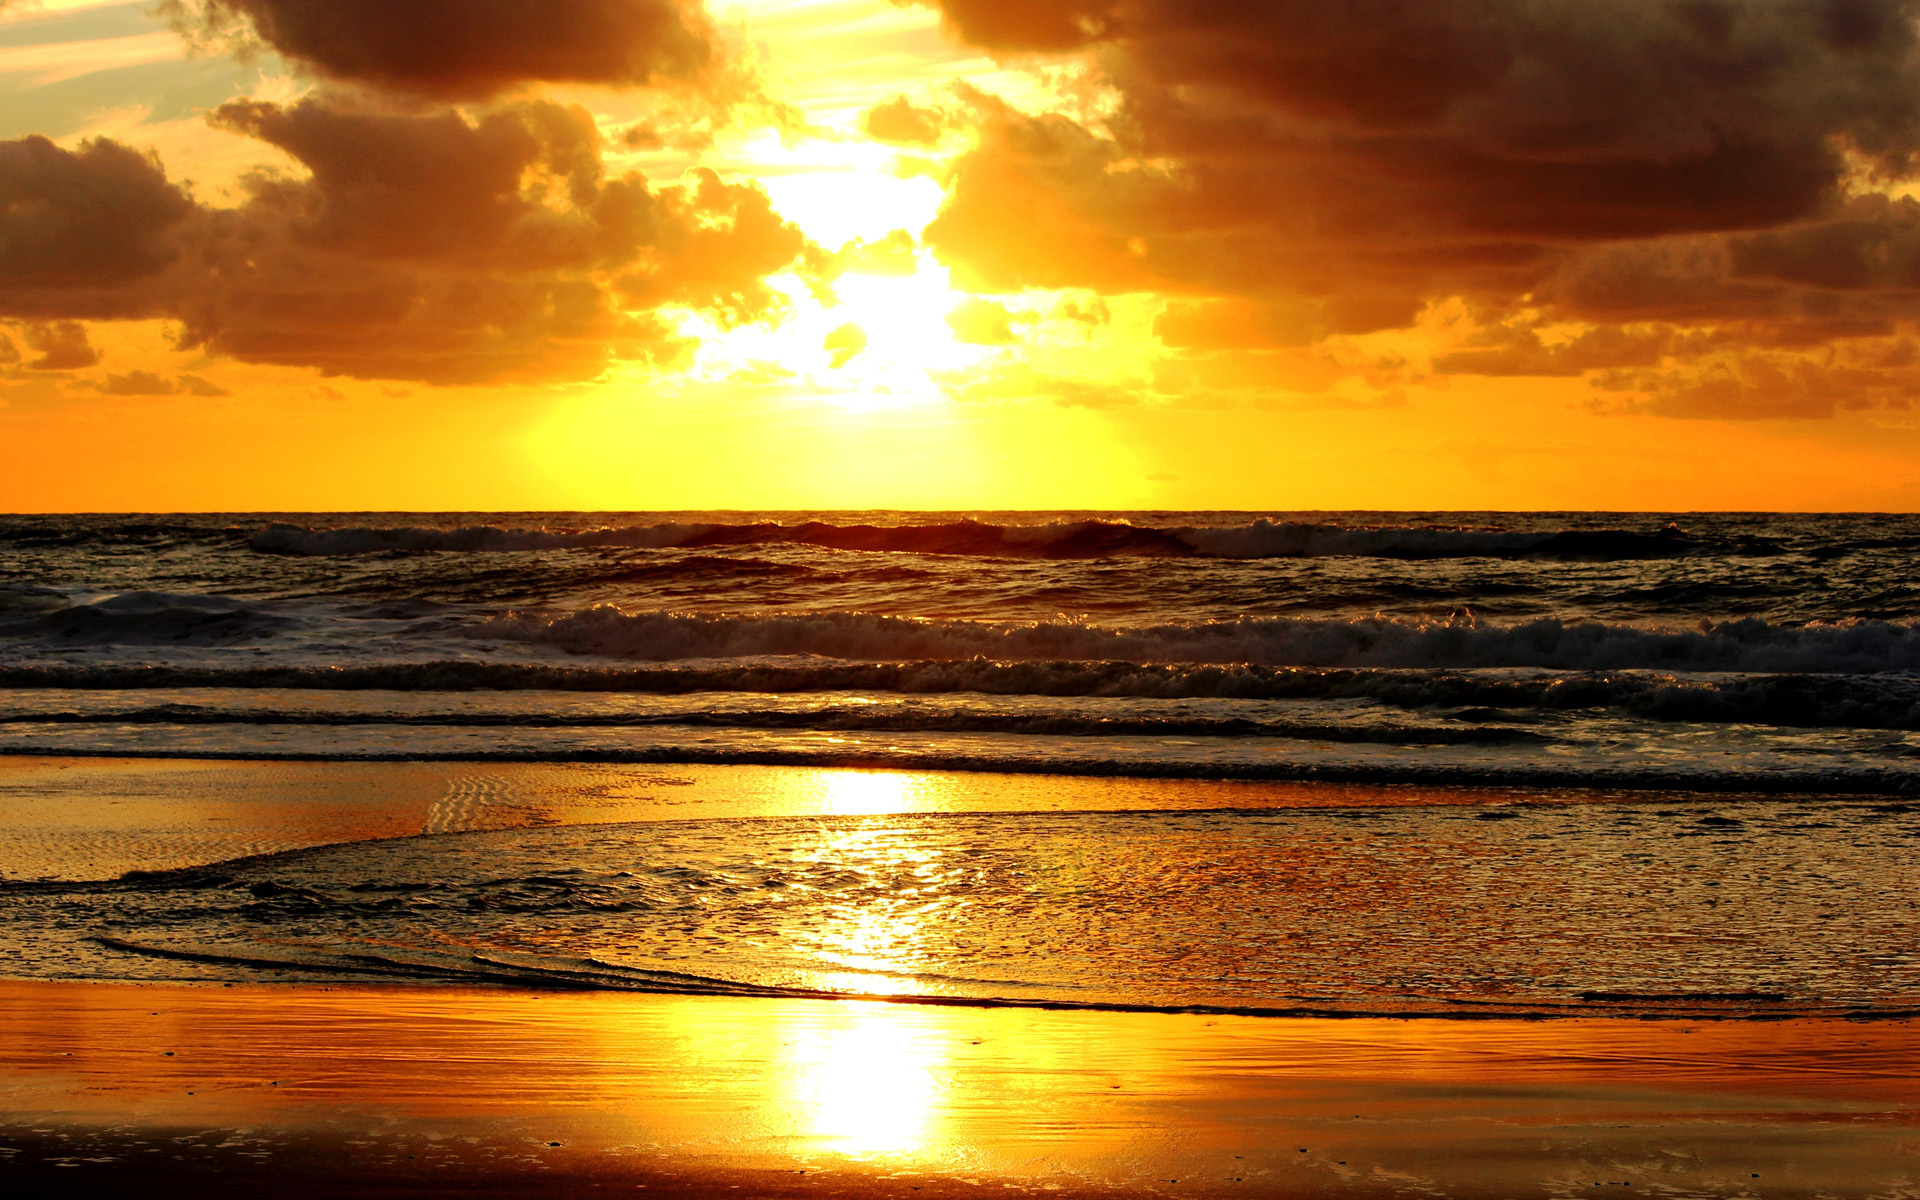 Golden sunset hd